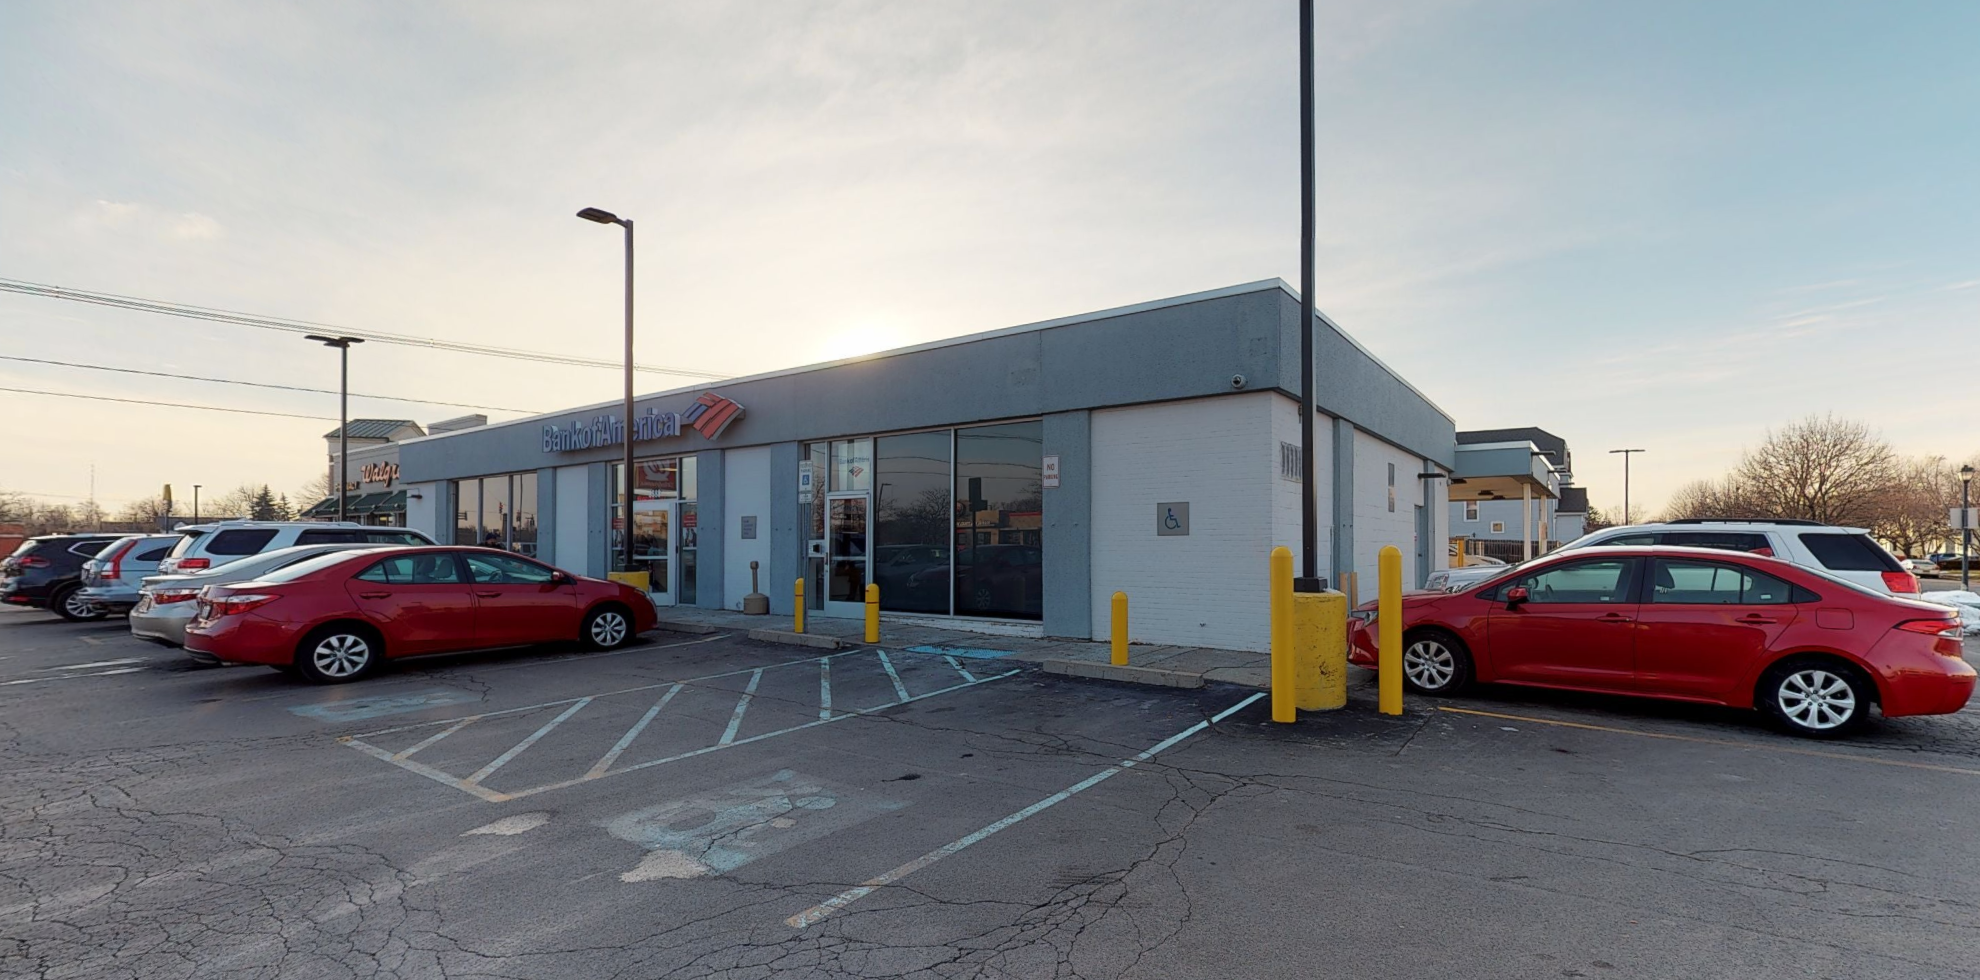 Bank of America financial center with drive-thru ATM | 3588 Delaware Ave, Kenmore, NY 14217